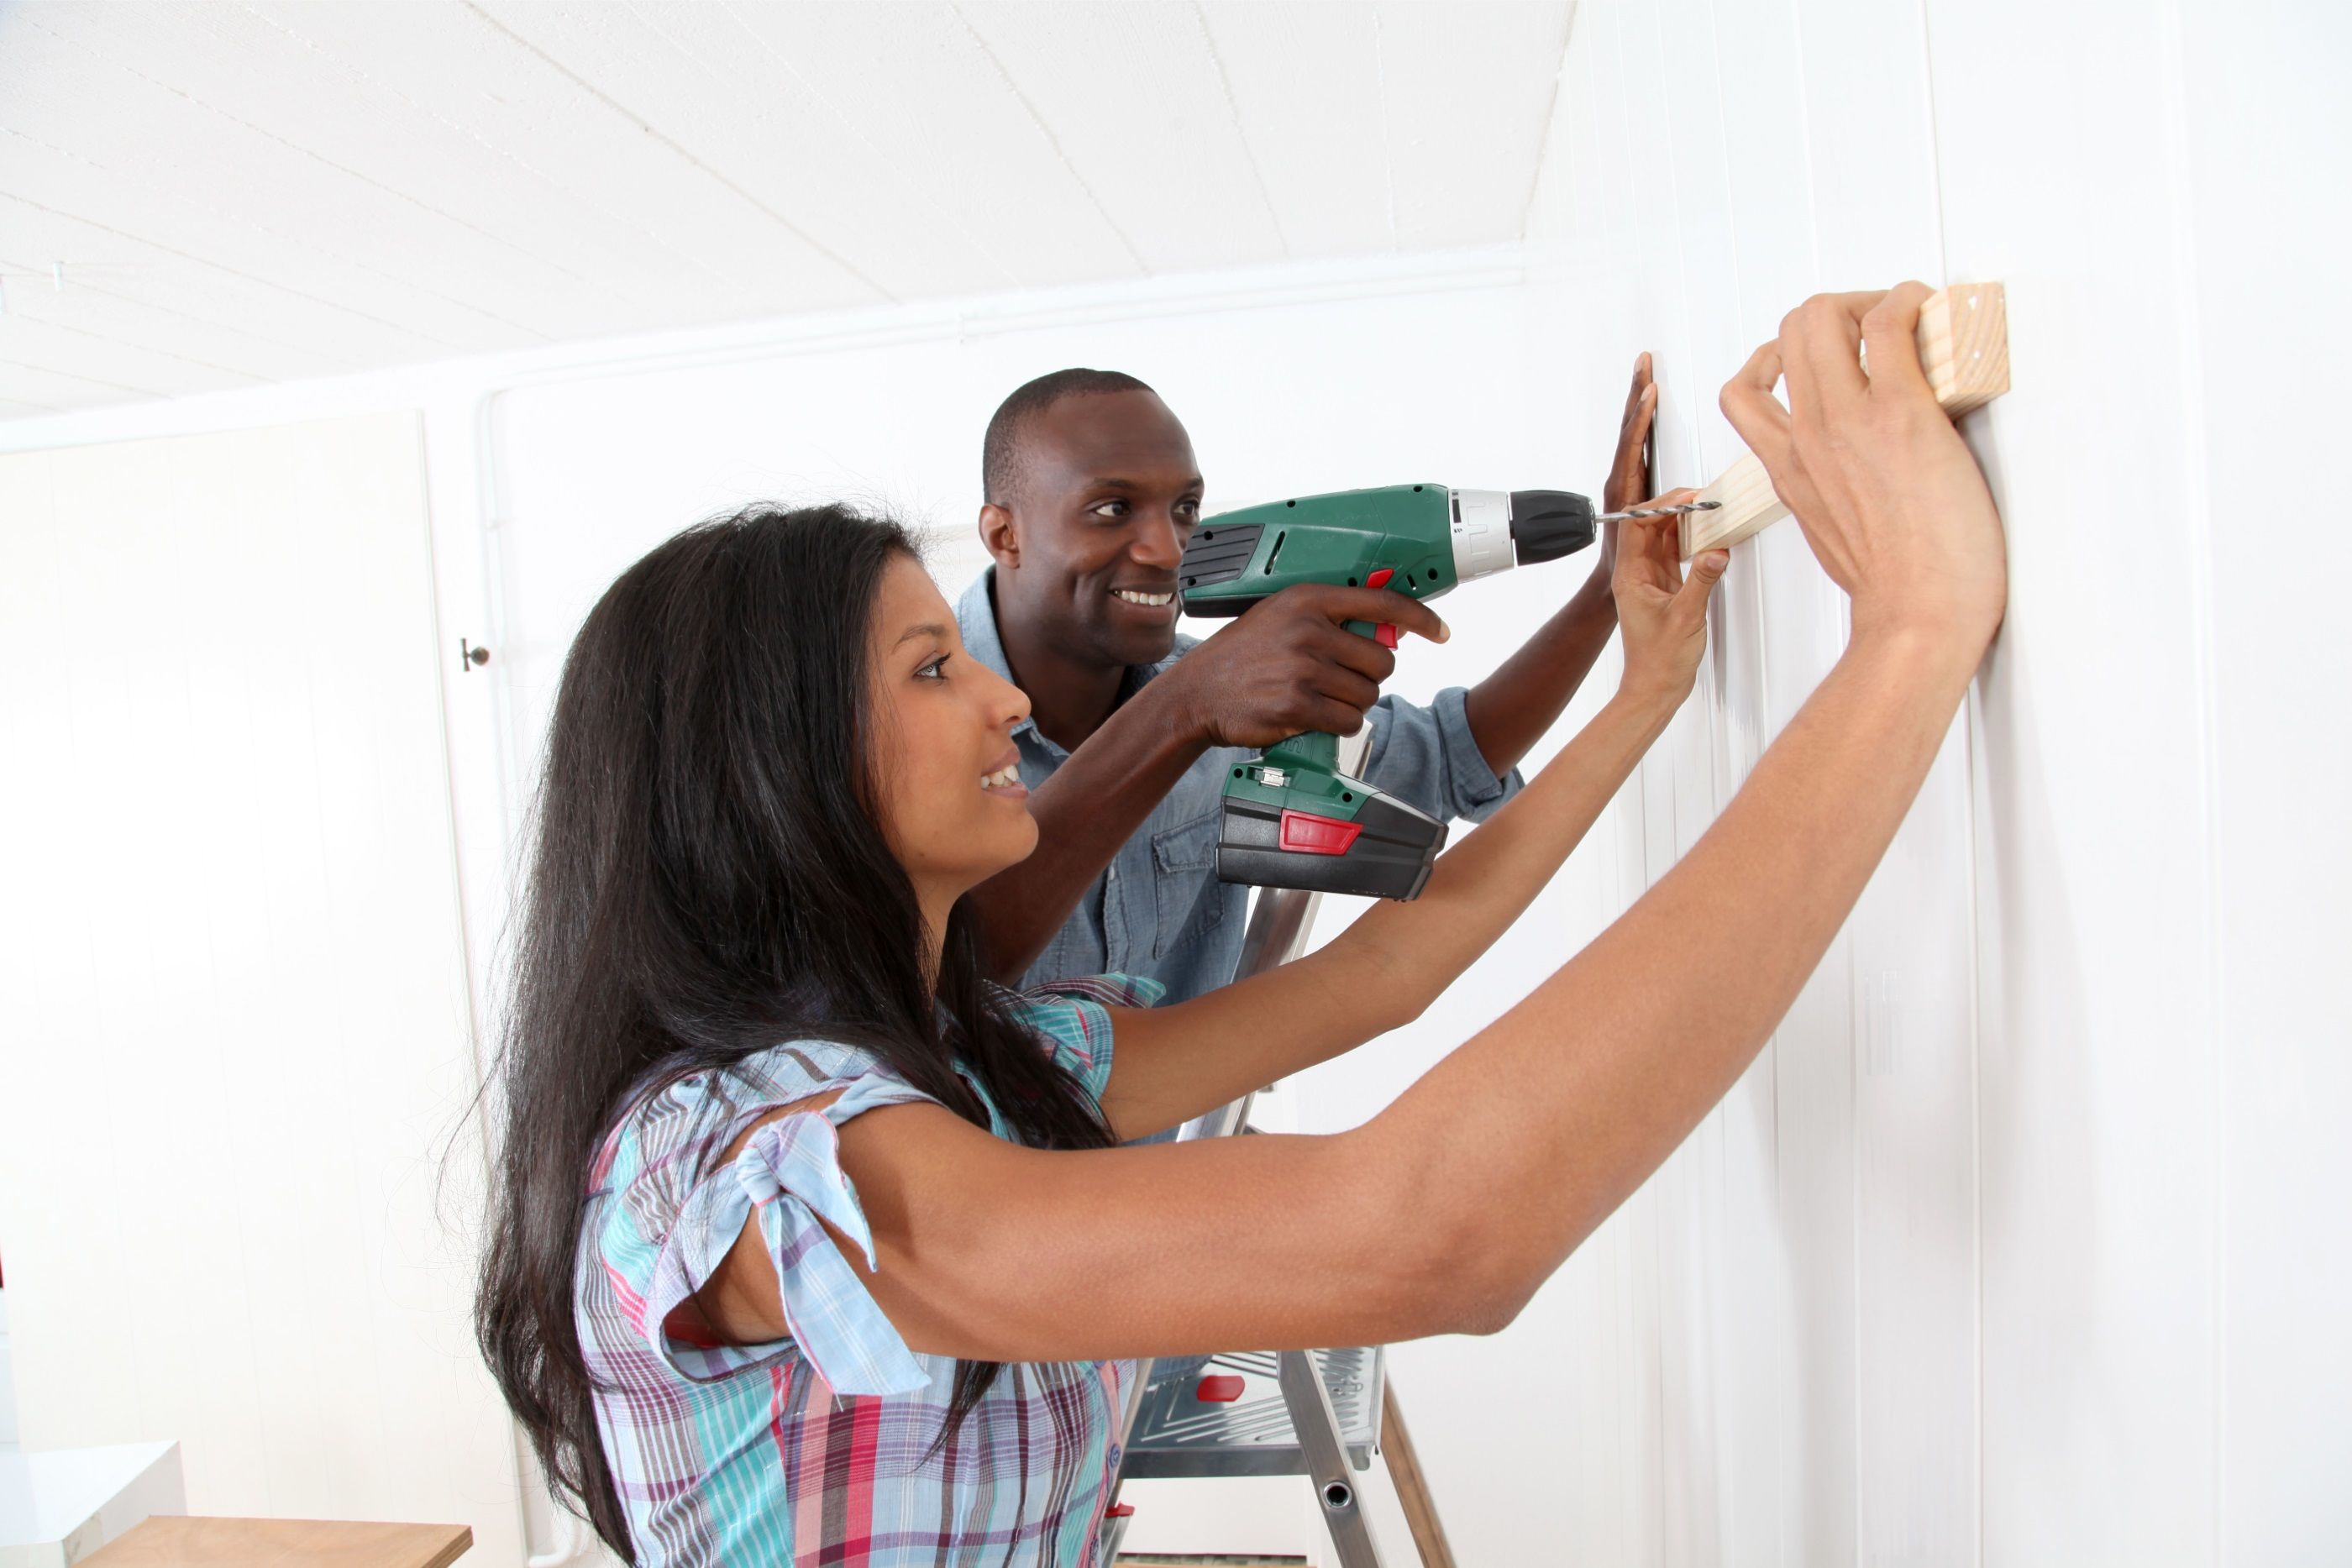 Couple Working on Home Project